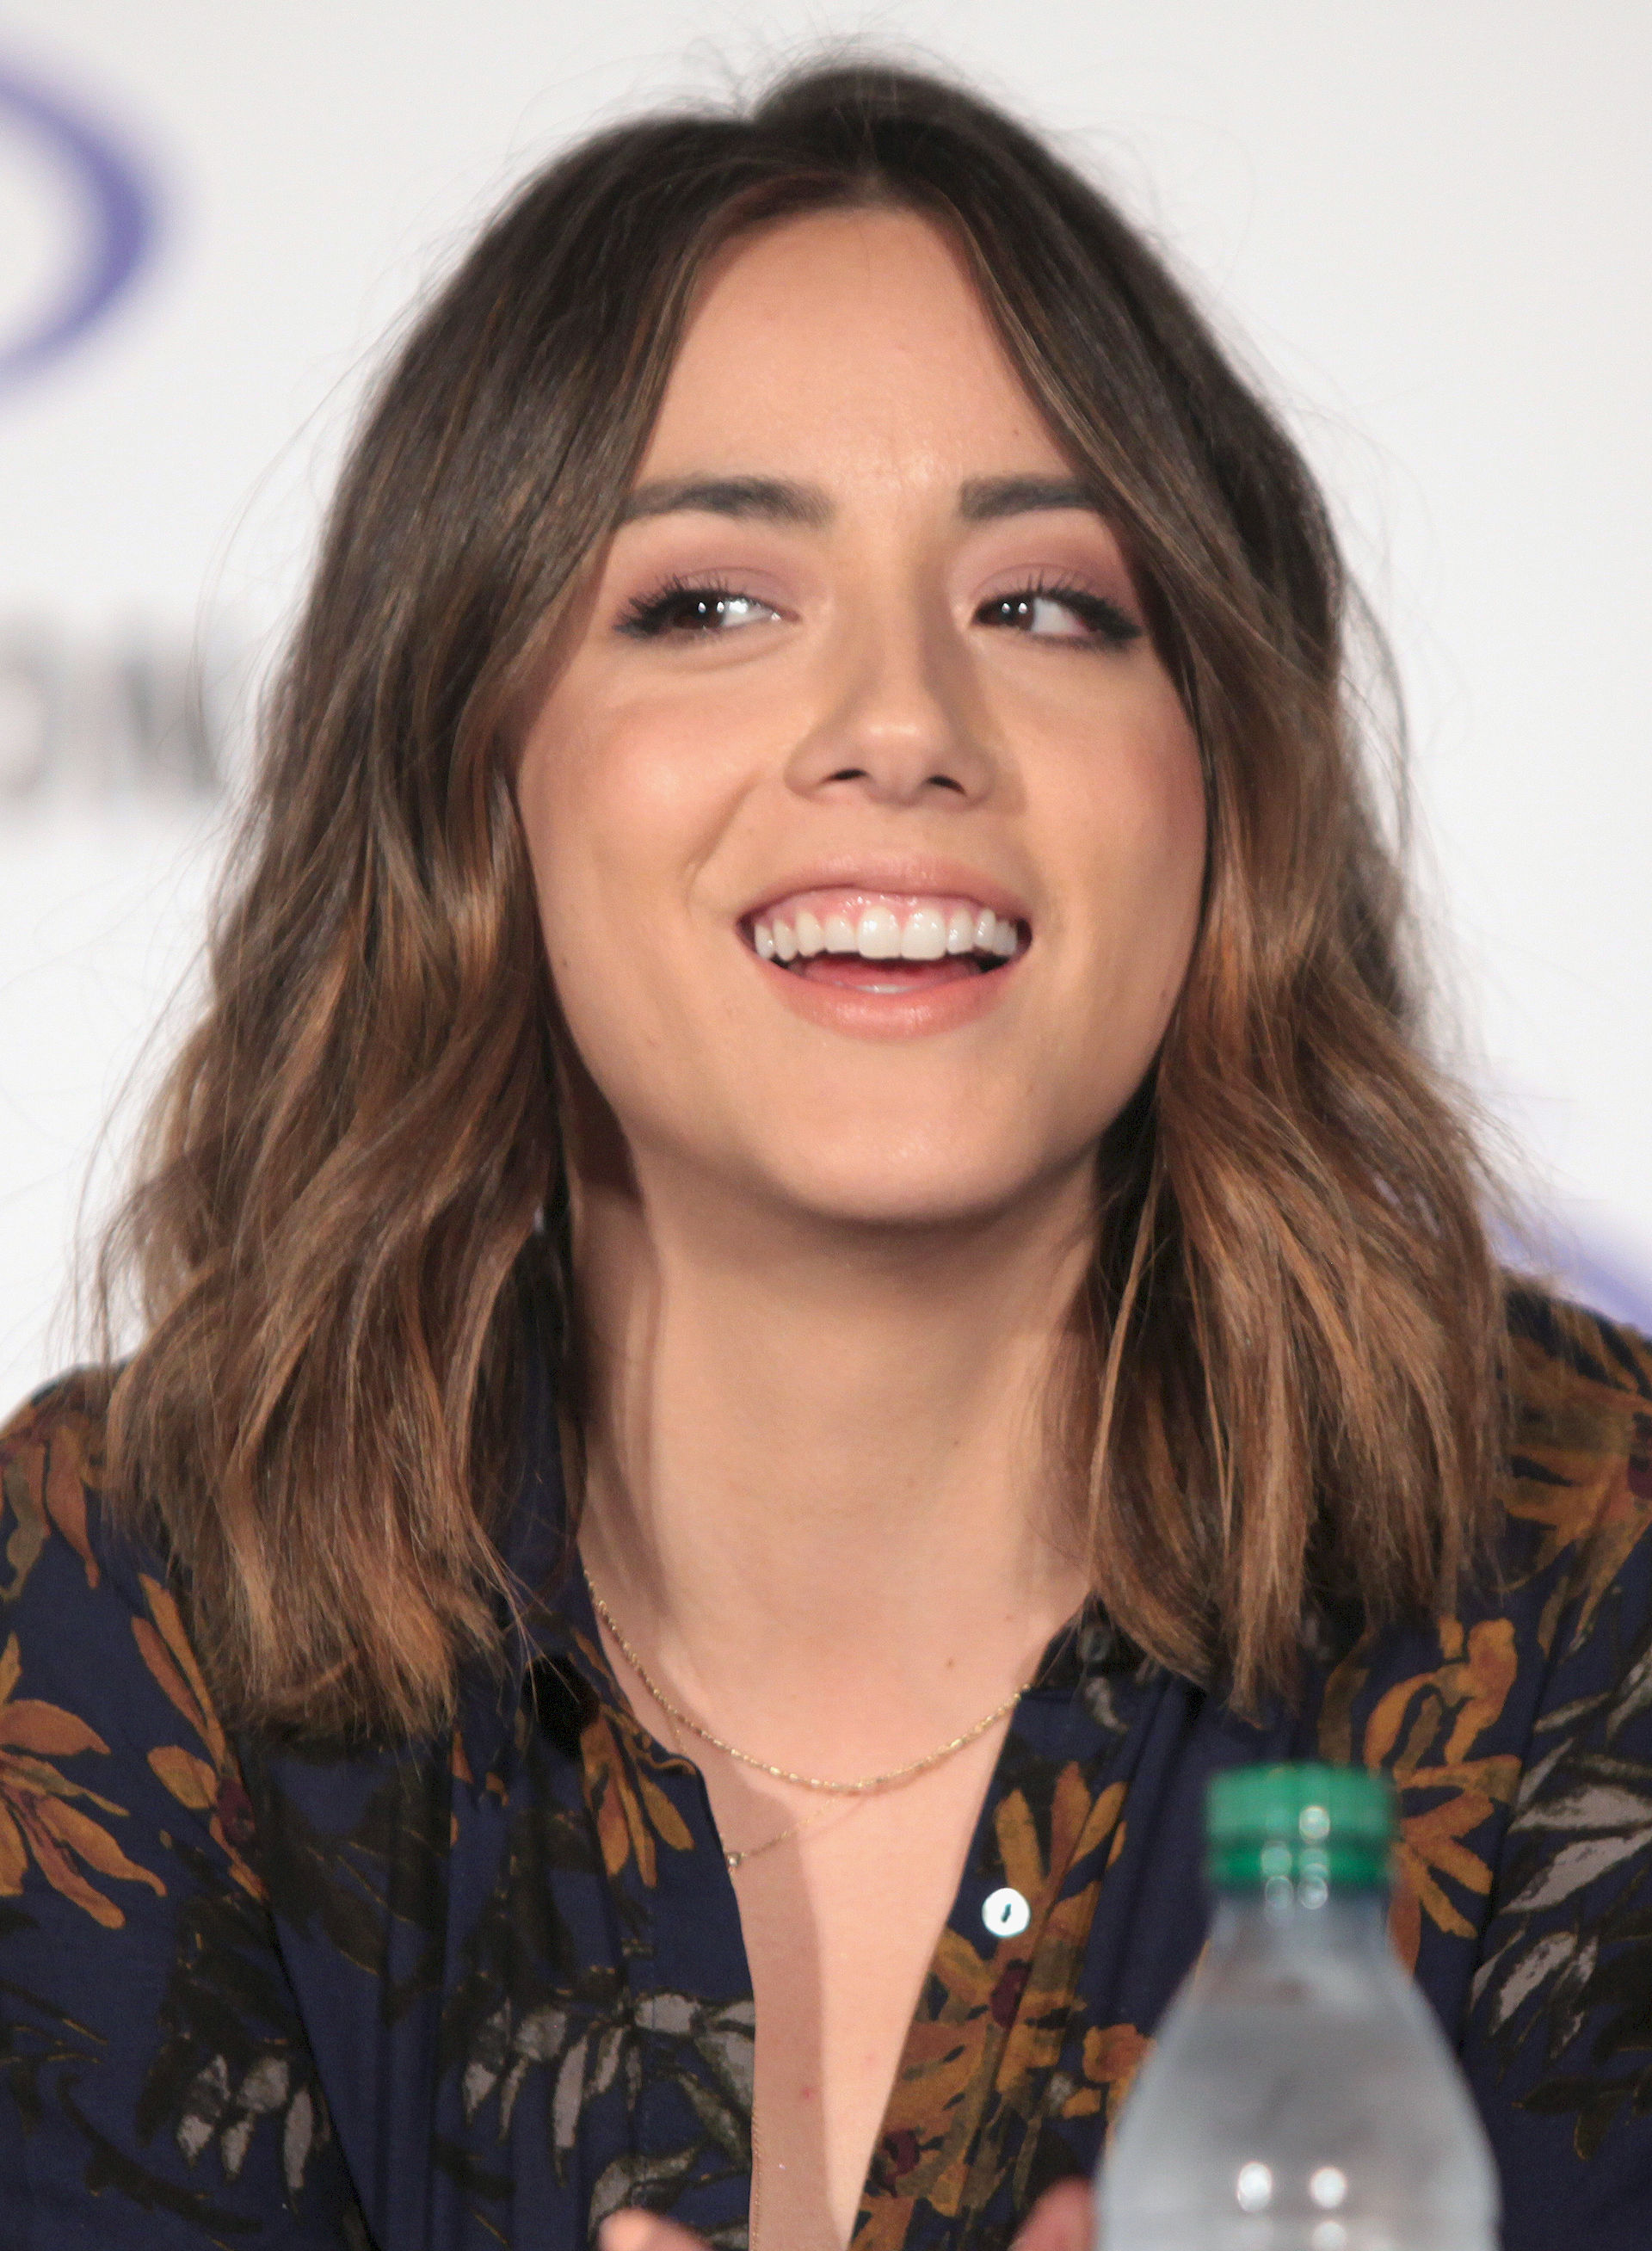 Photo of Chloe Bennet: American actress and singer